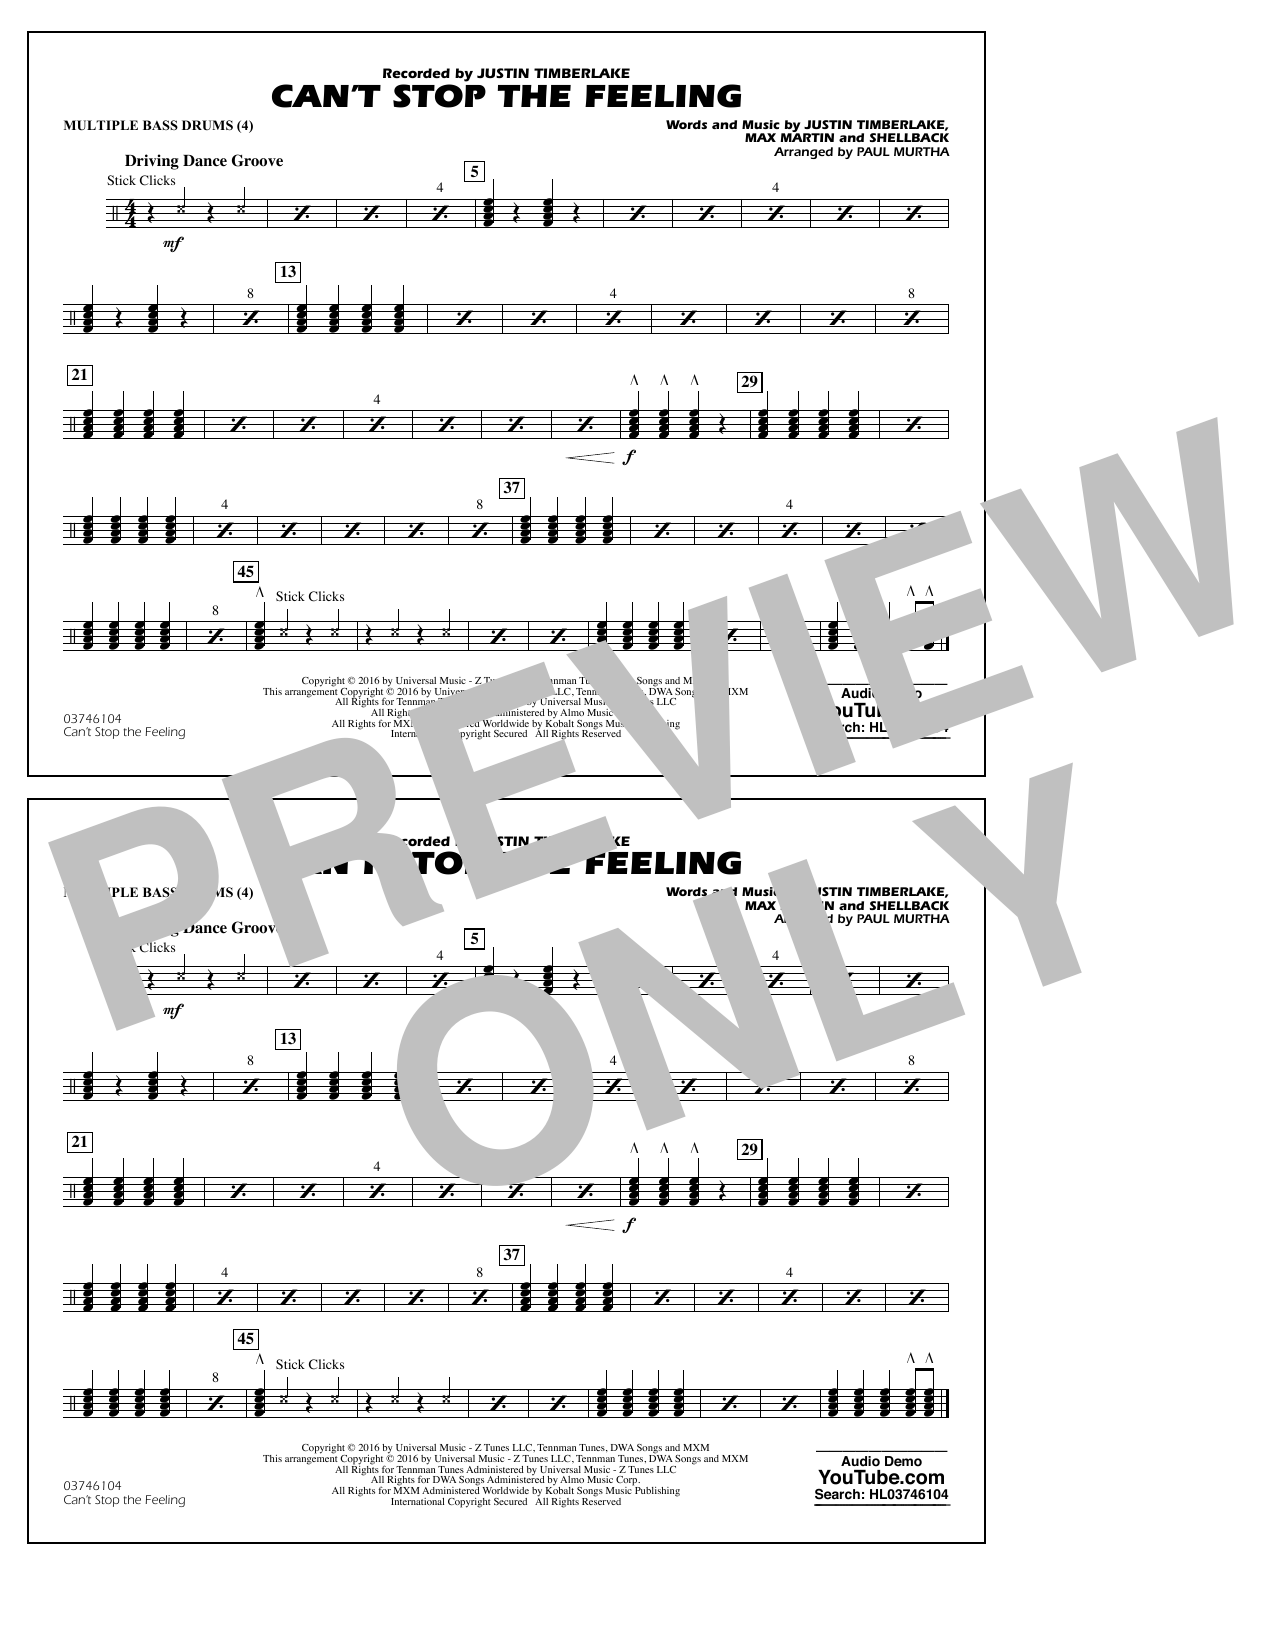 Can't Stop the Feeling (from Trolls) - Multiple Bass Drums Sheet Music